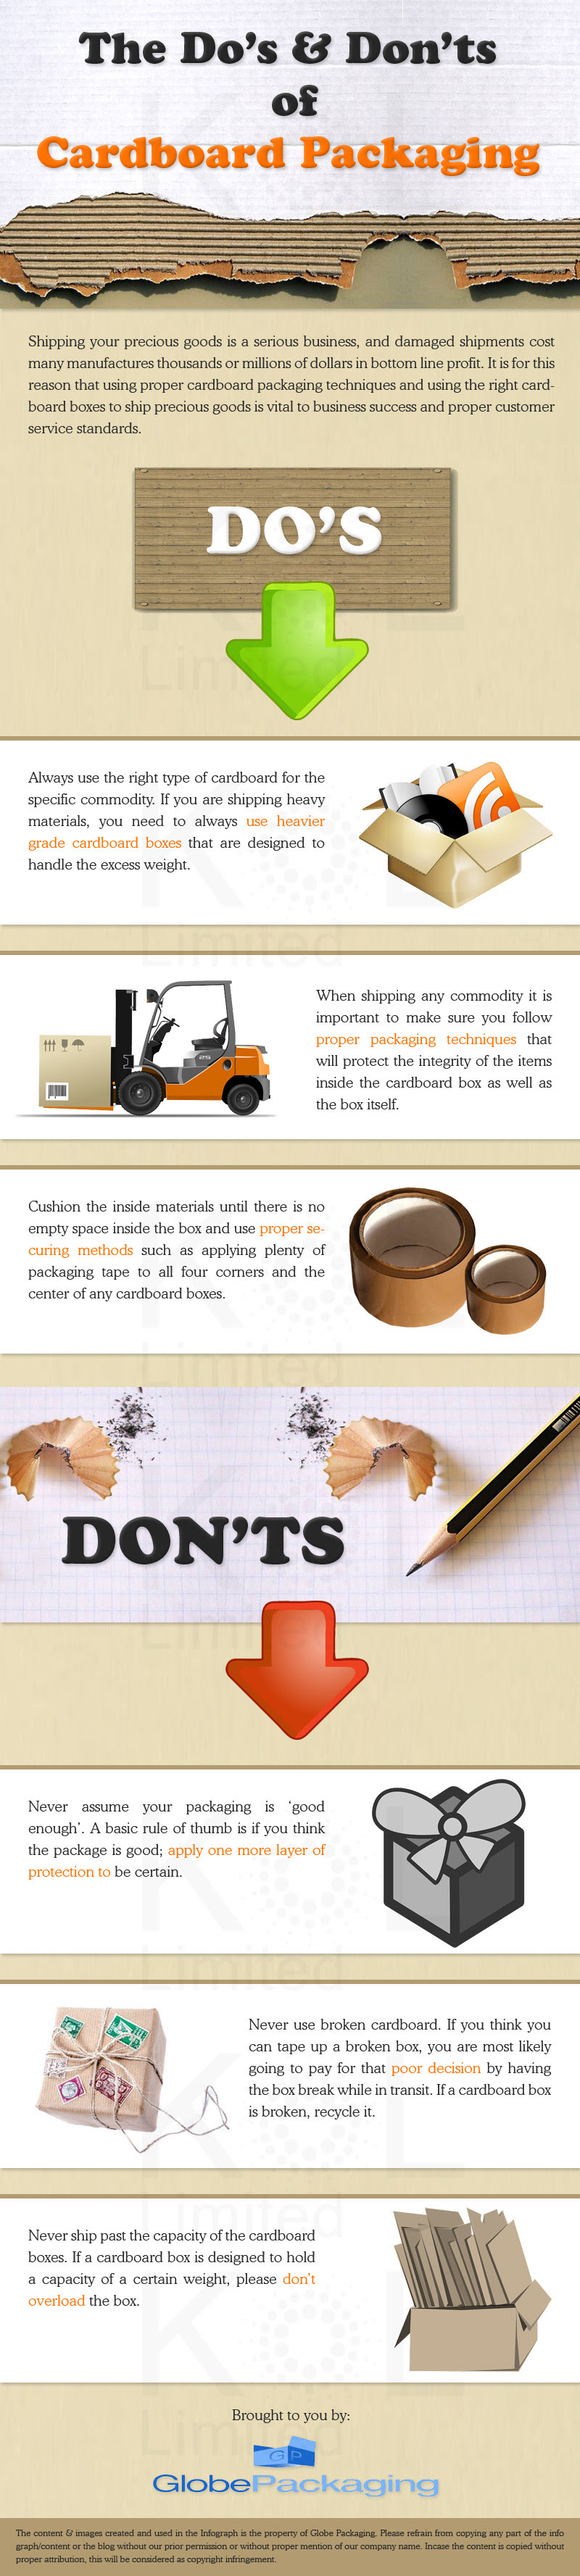 Infographic: The Do's And Don'ts Of Cardboard Packaging